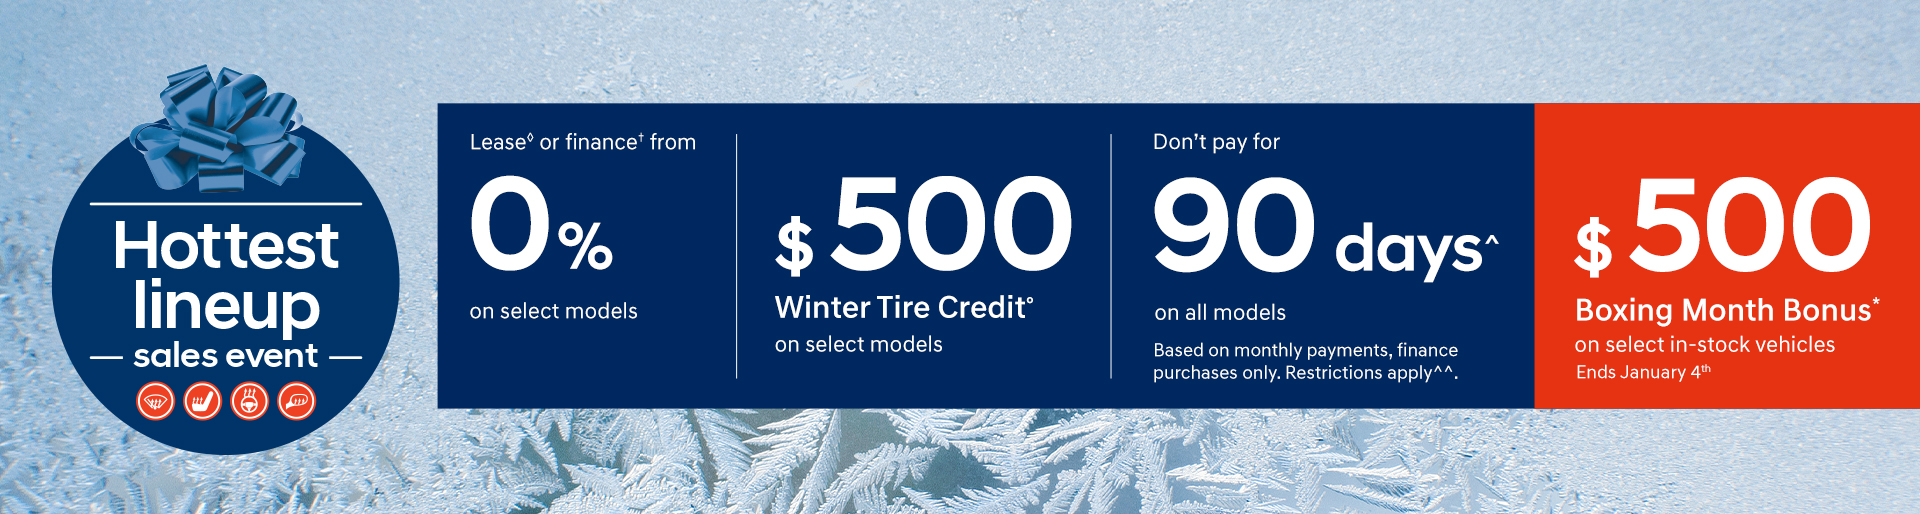 Special Offers on new vehicles at Finch Hyundai in London Ontario